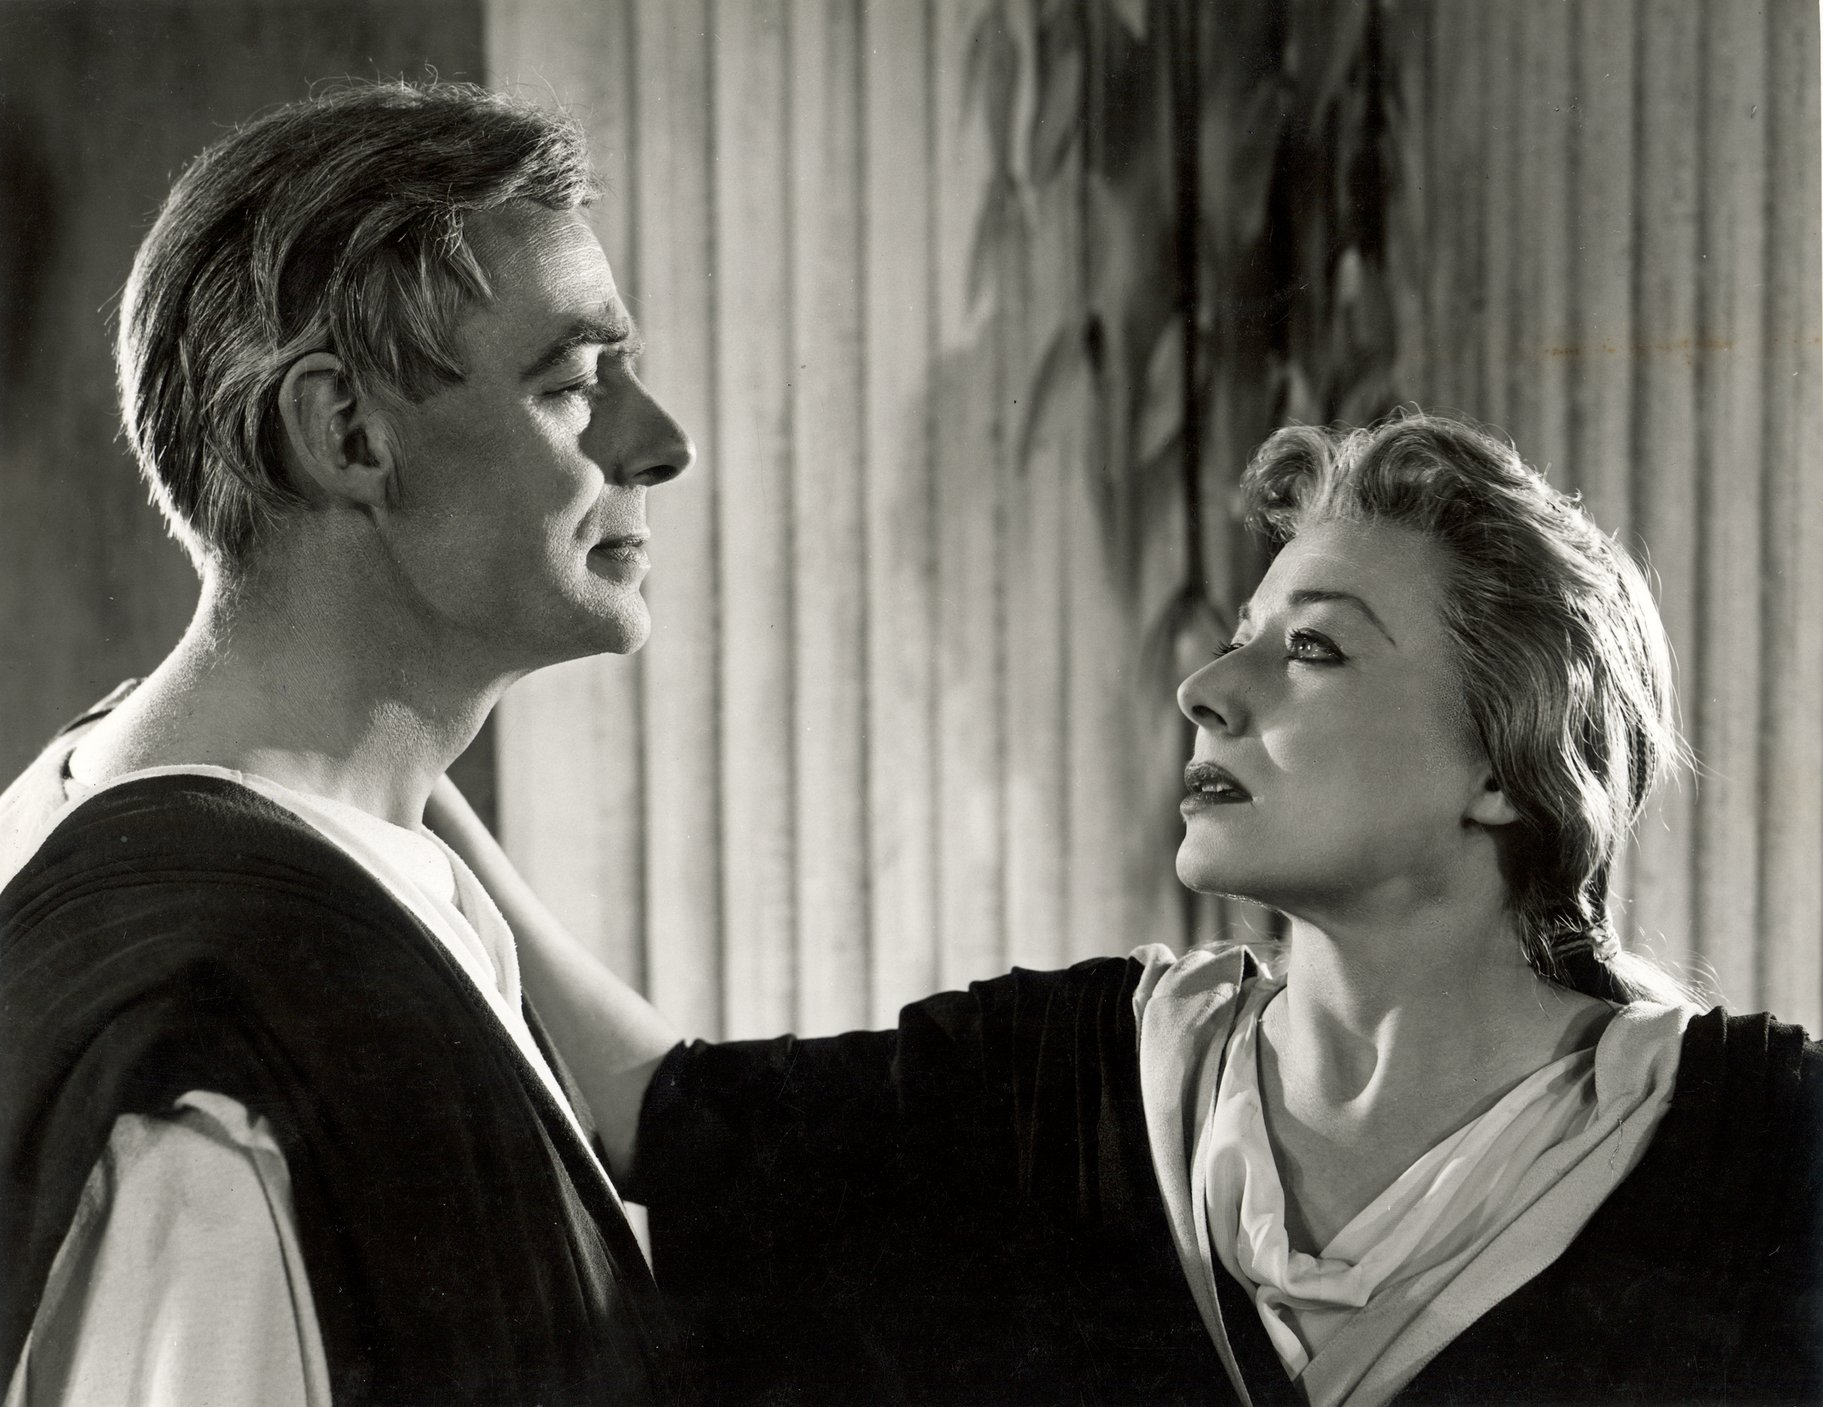 Portia places her hand on  Brutus' shoulder in the 1957 production of Julius Caesar.